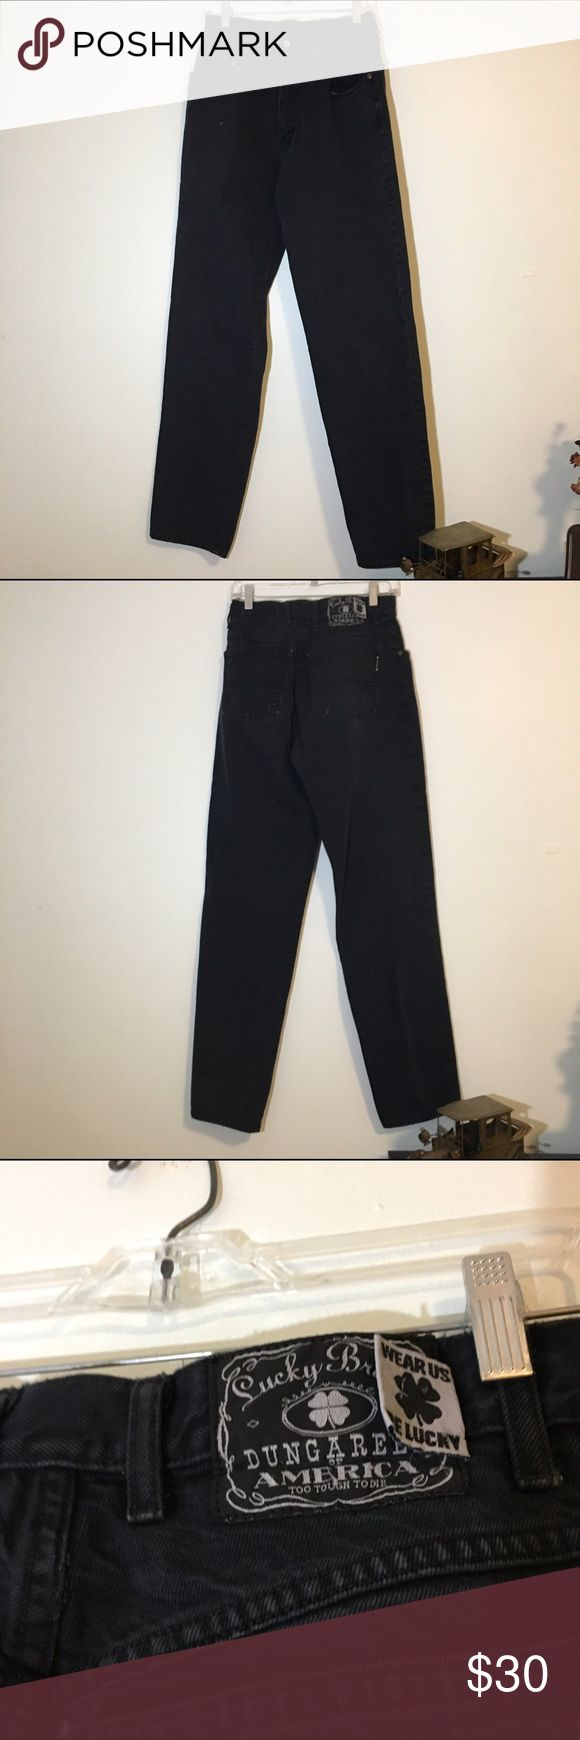 Vintage Black Lucky Brand Dungarees Jeans Interesting wear, black dungaree jeans from Lucky Brand. No wear, but the tag is slashed (as seen in photo). Size 30. Seems like bootcut. Lucky Brand Jeans Boot Cut